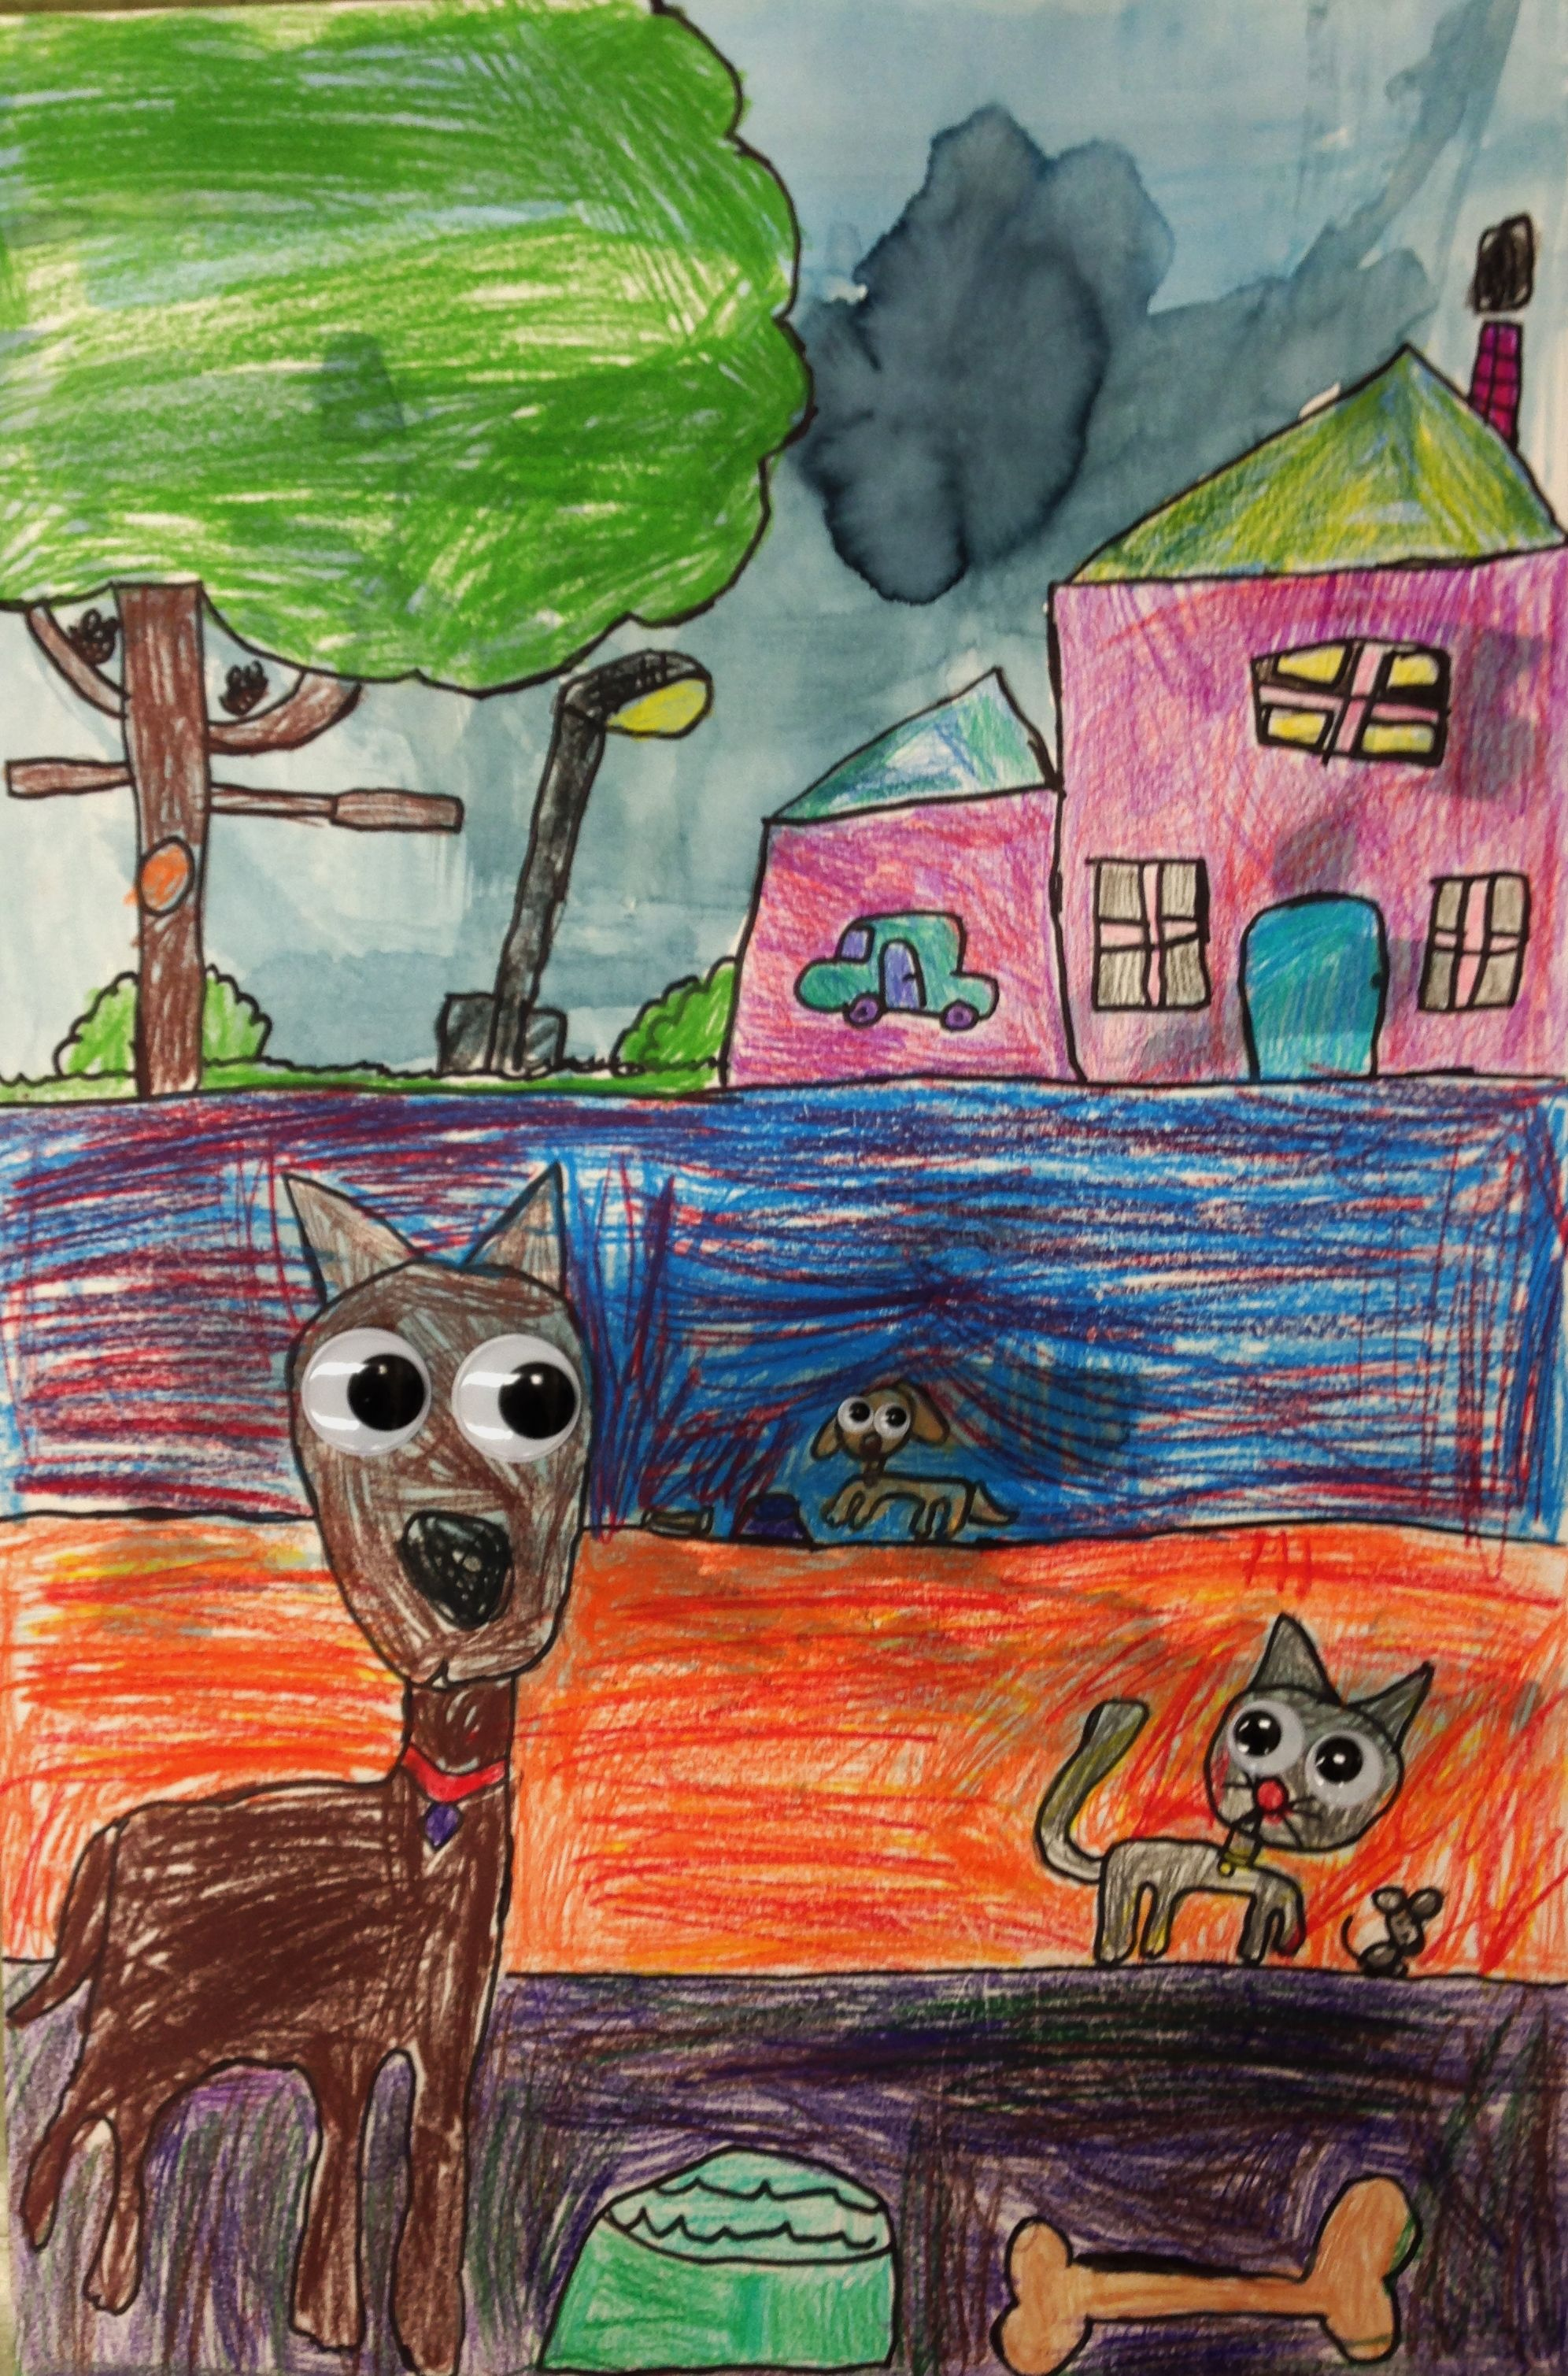 Cat and Dogs at night. Color sticks and watercolor.